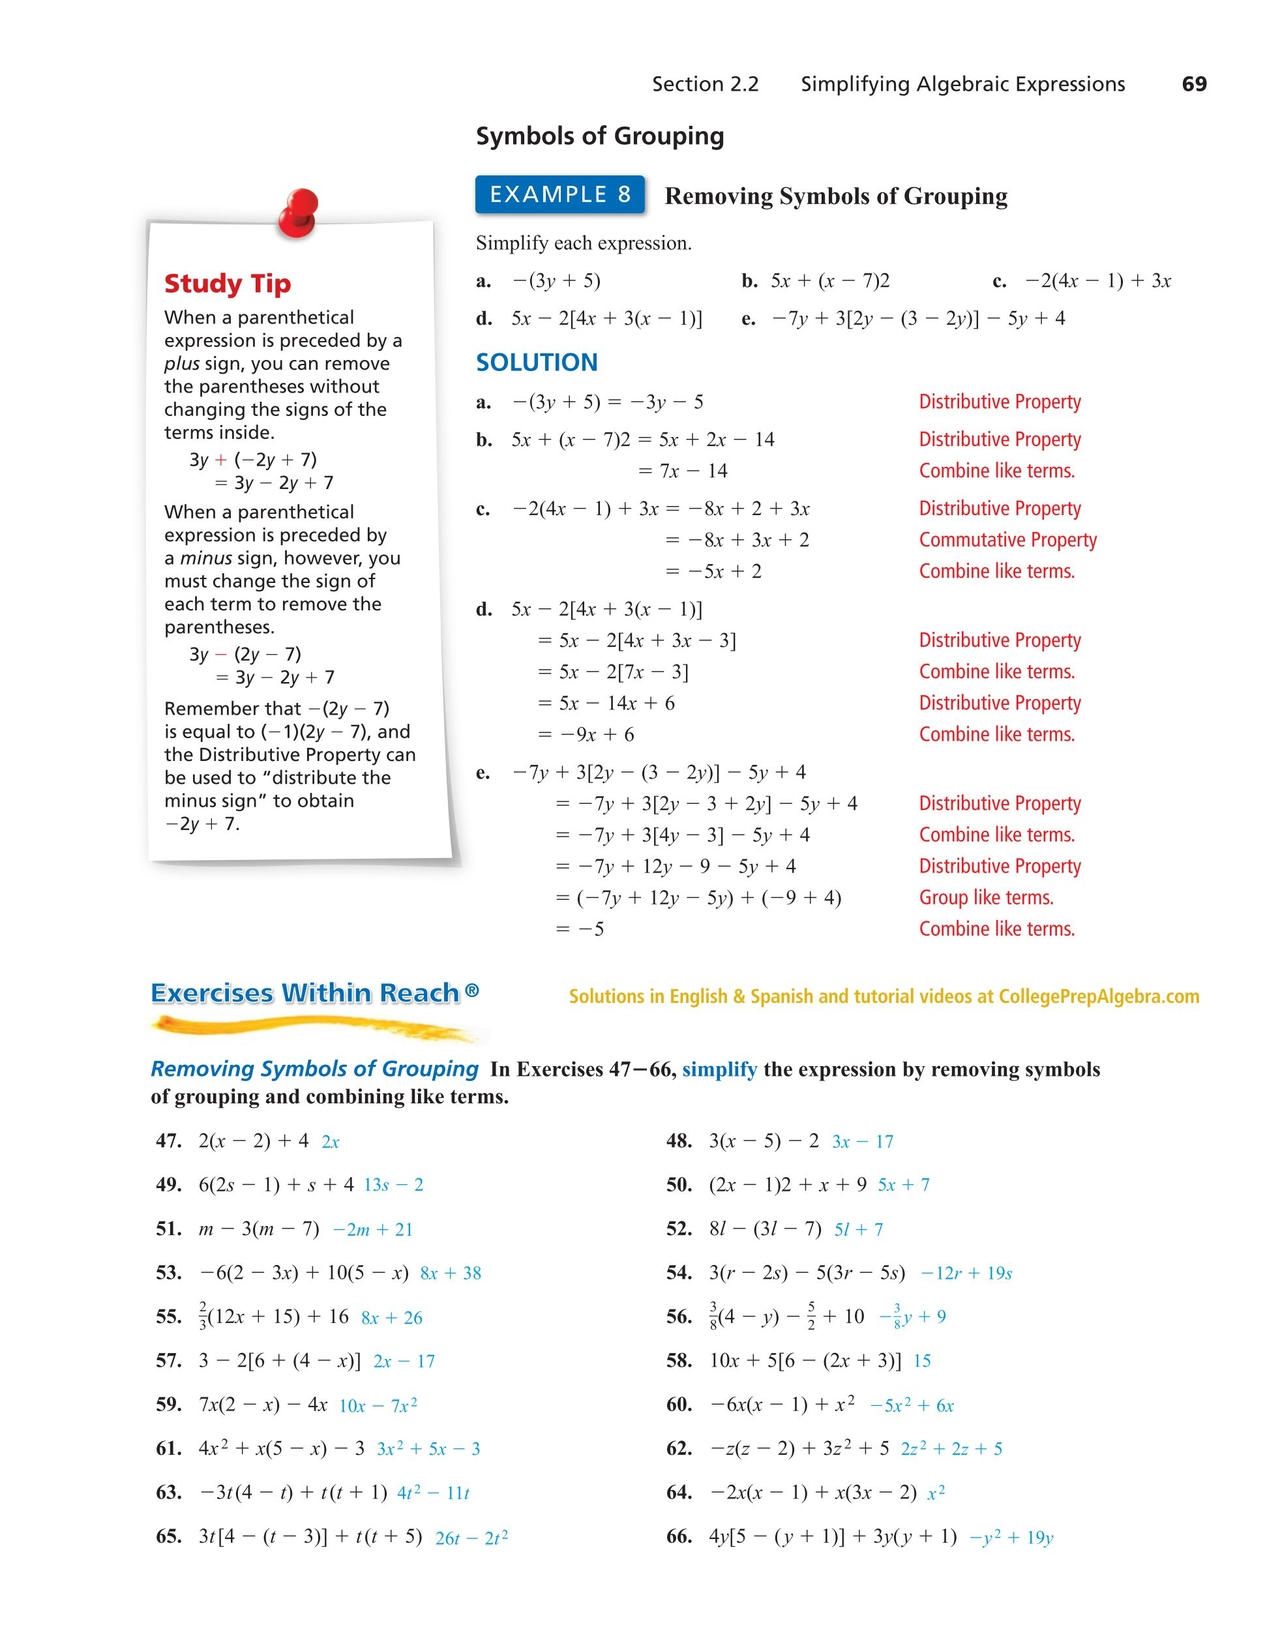 College prep algebra 68 69 of algebra simplifying algebraic expressions to simplify an algebraic expression generally means to remove symbols of grouping and combine like terms biocorpaavc Choice Image